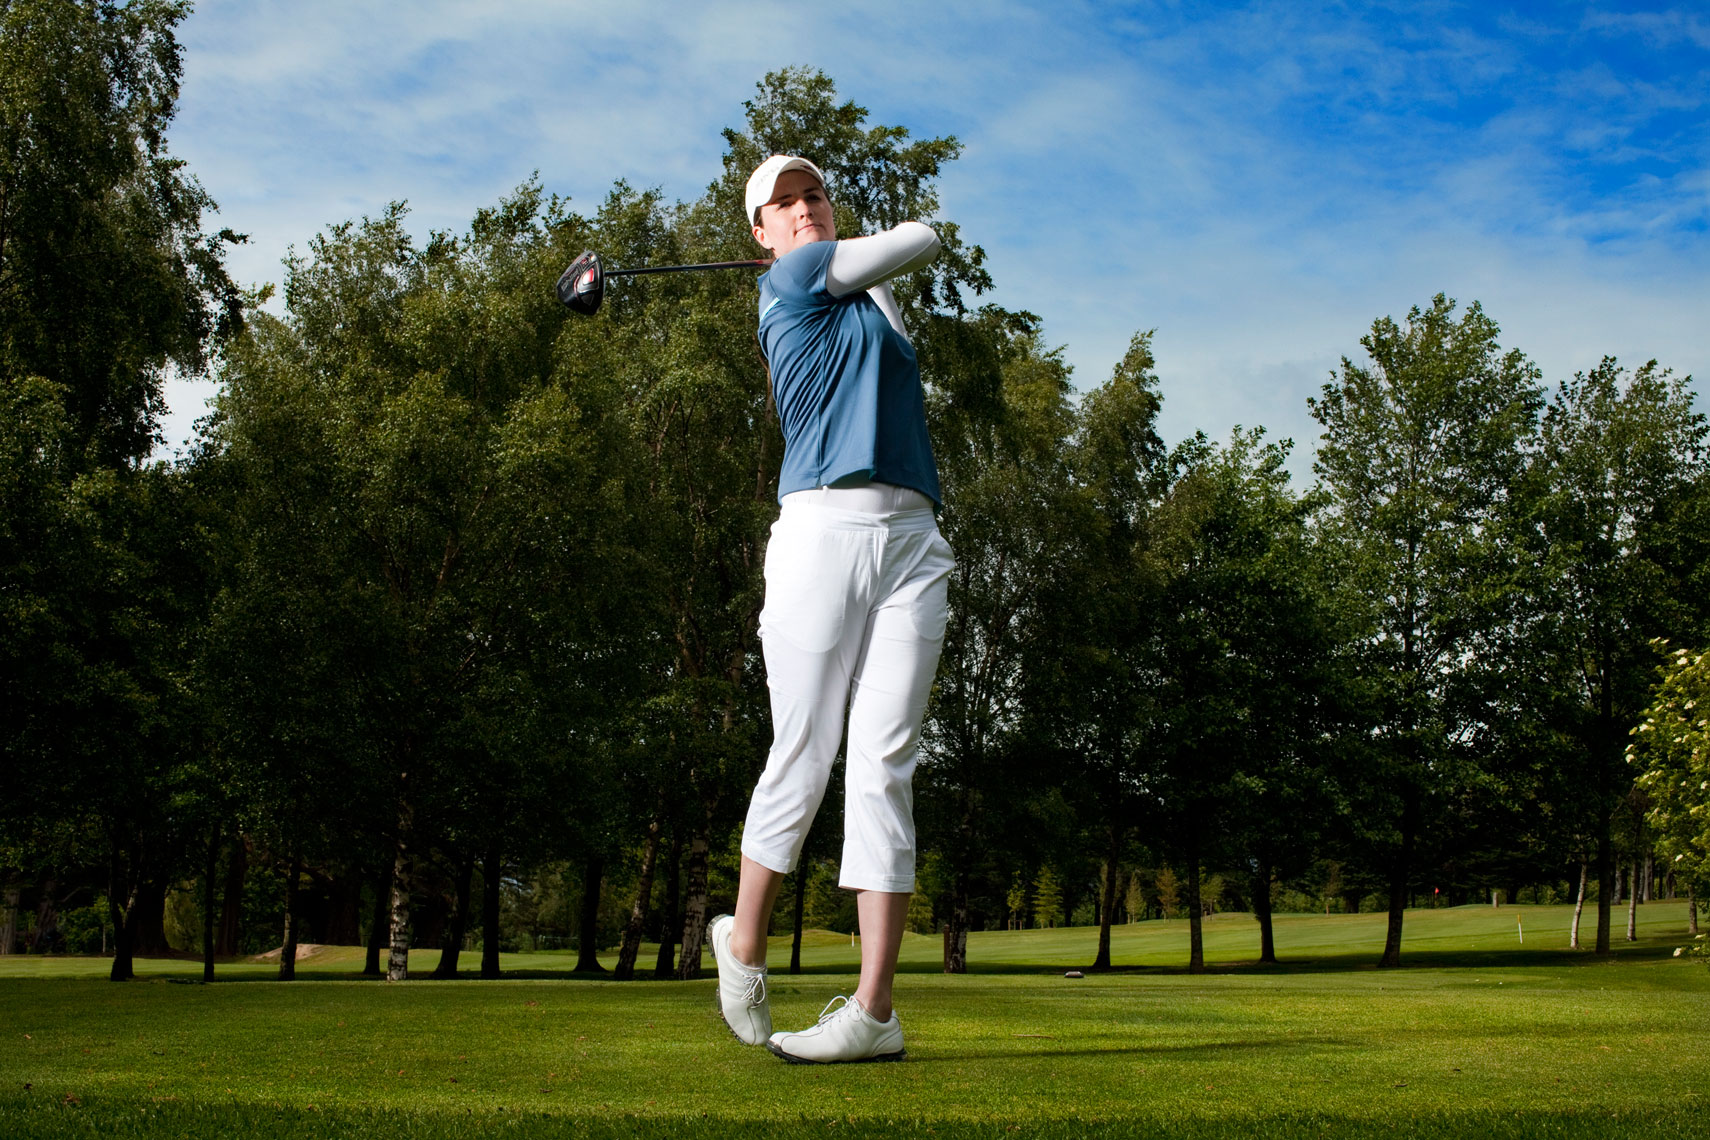 athlete portraits: danielle mcveigh golfer